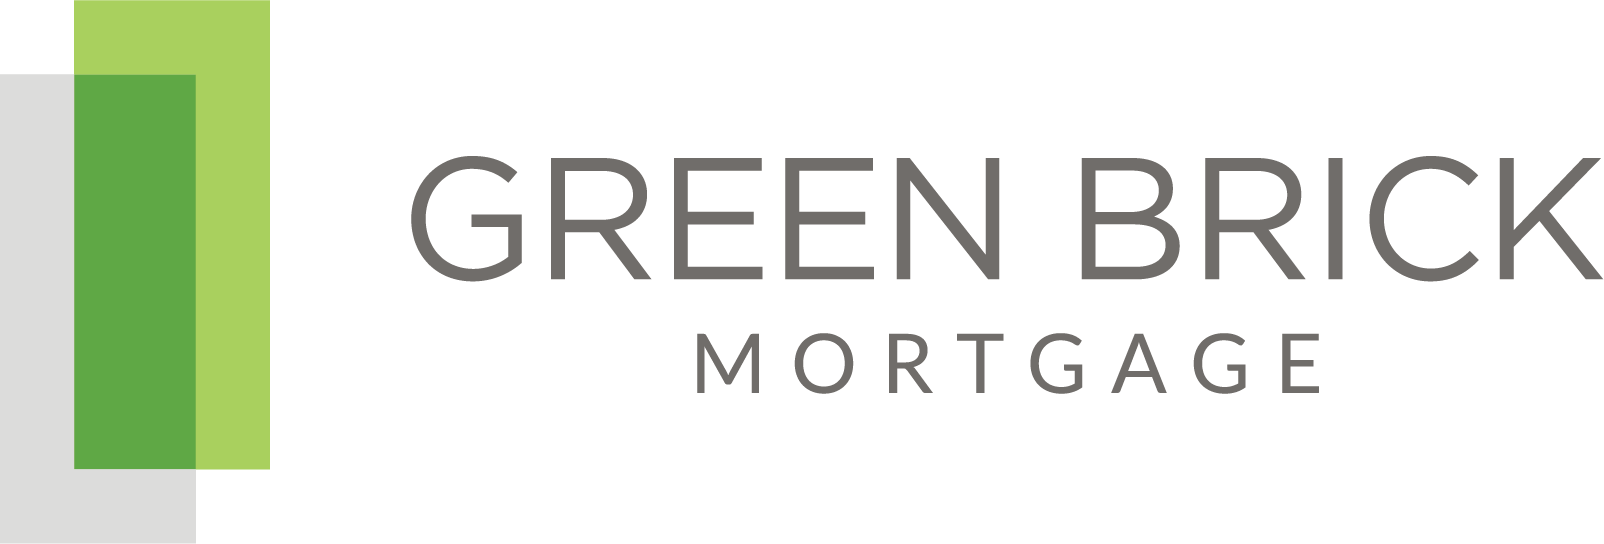 Green Brick Mortgage